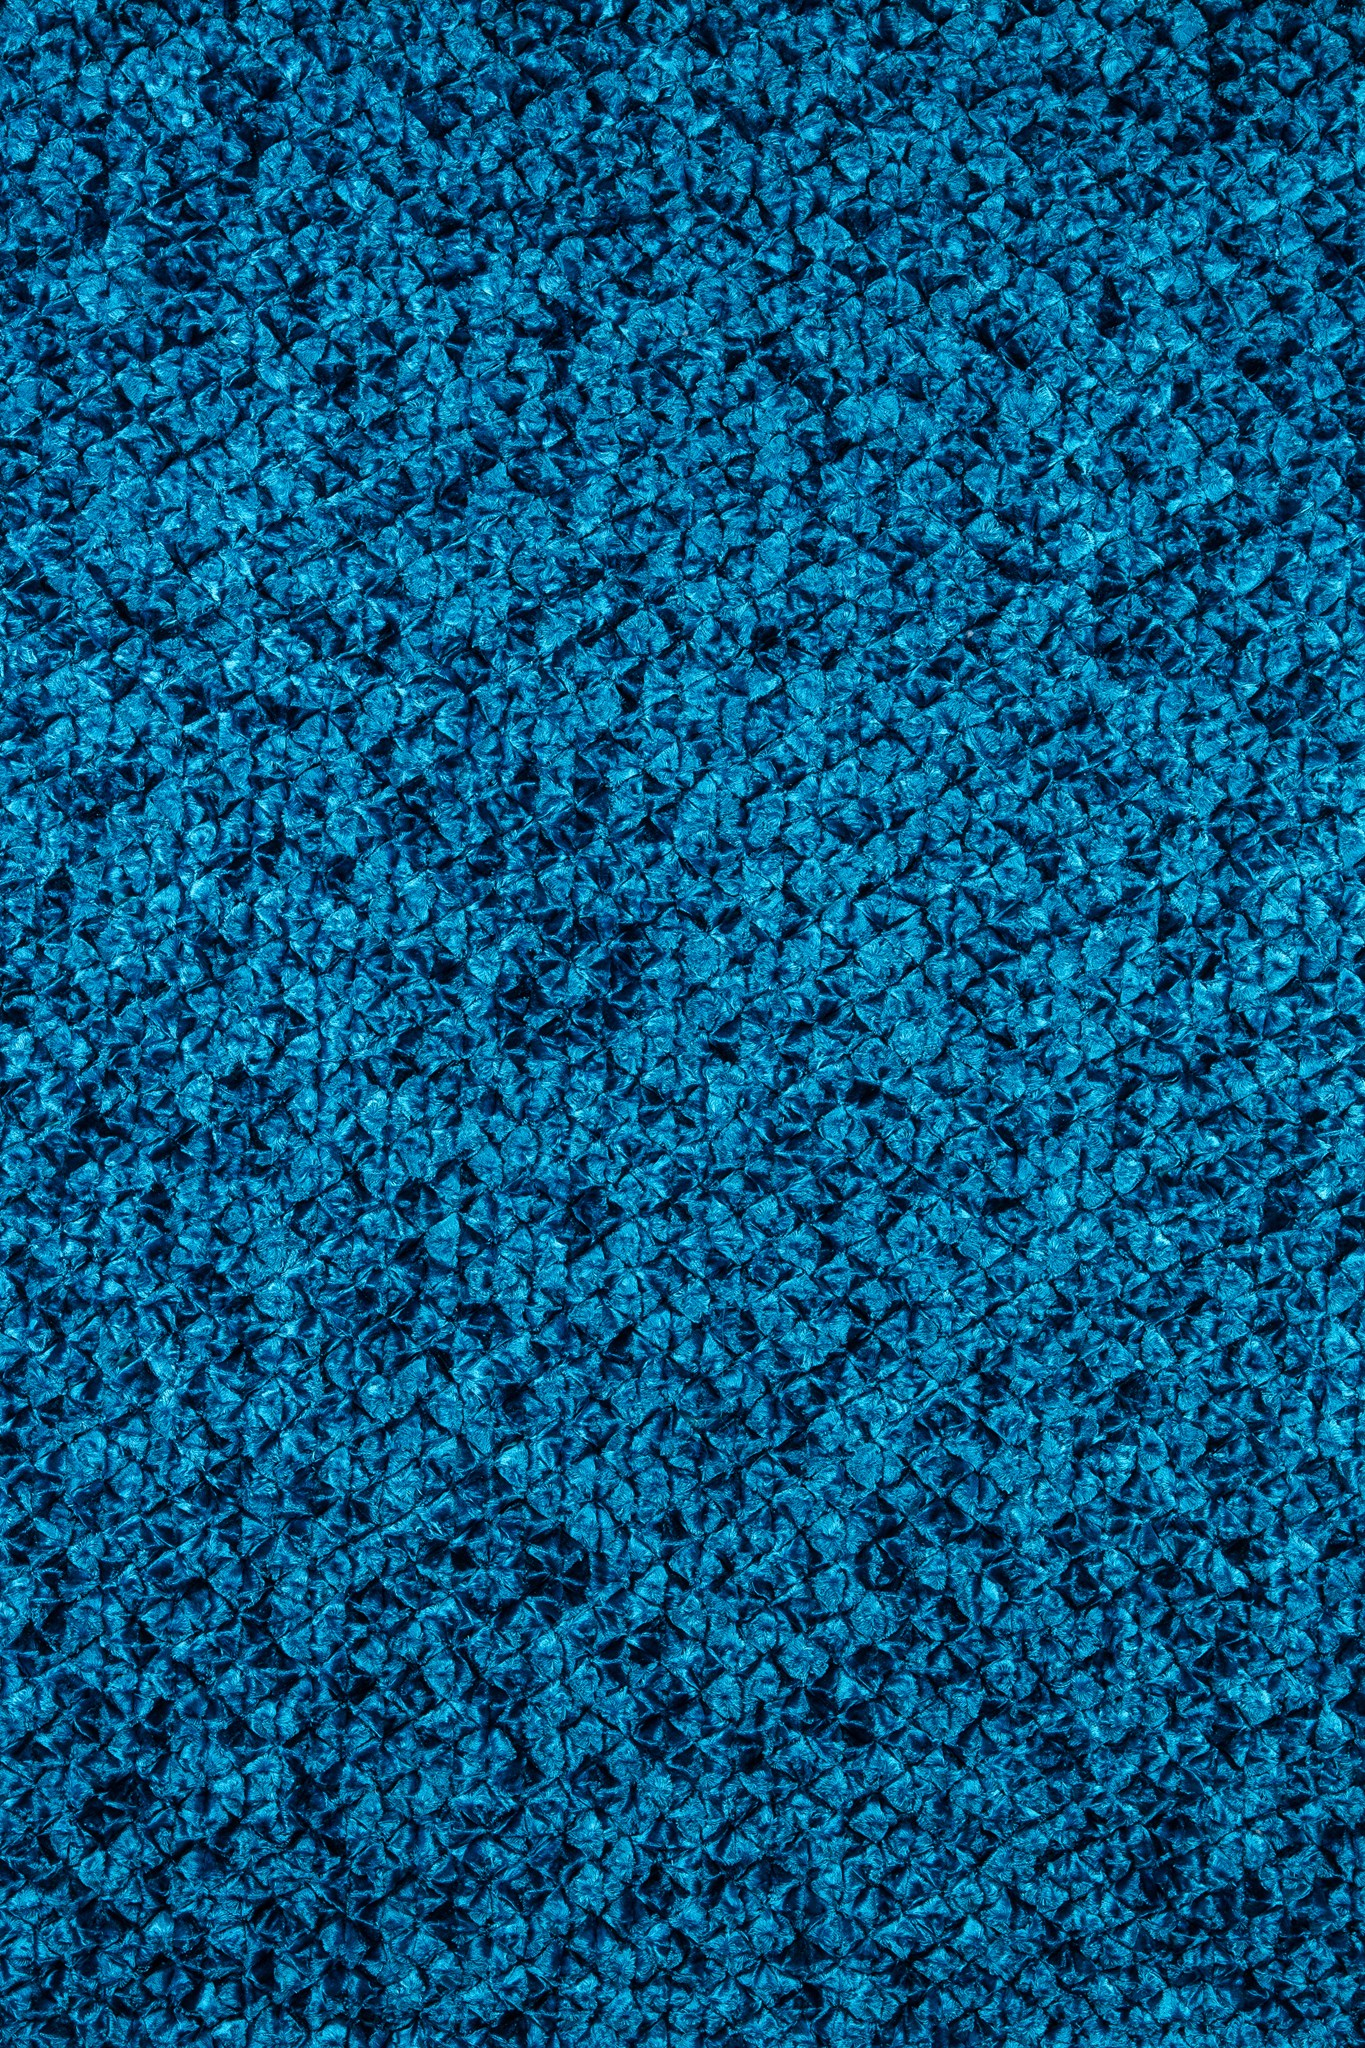 Shimmer Pebble Rug: 6'x9' Steel Blue